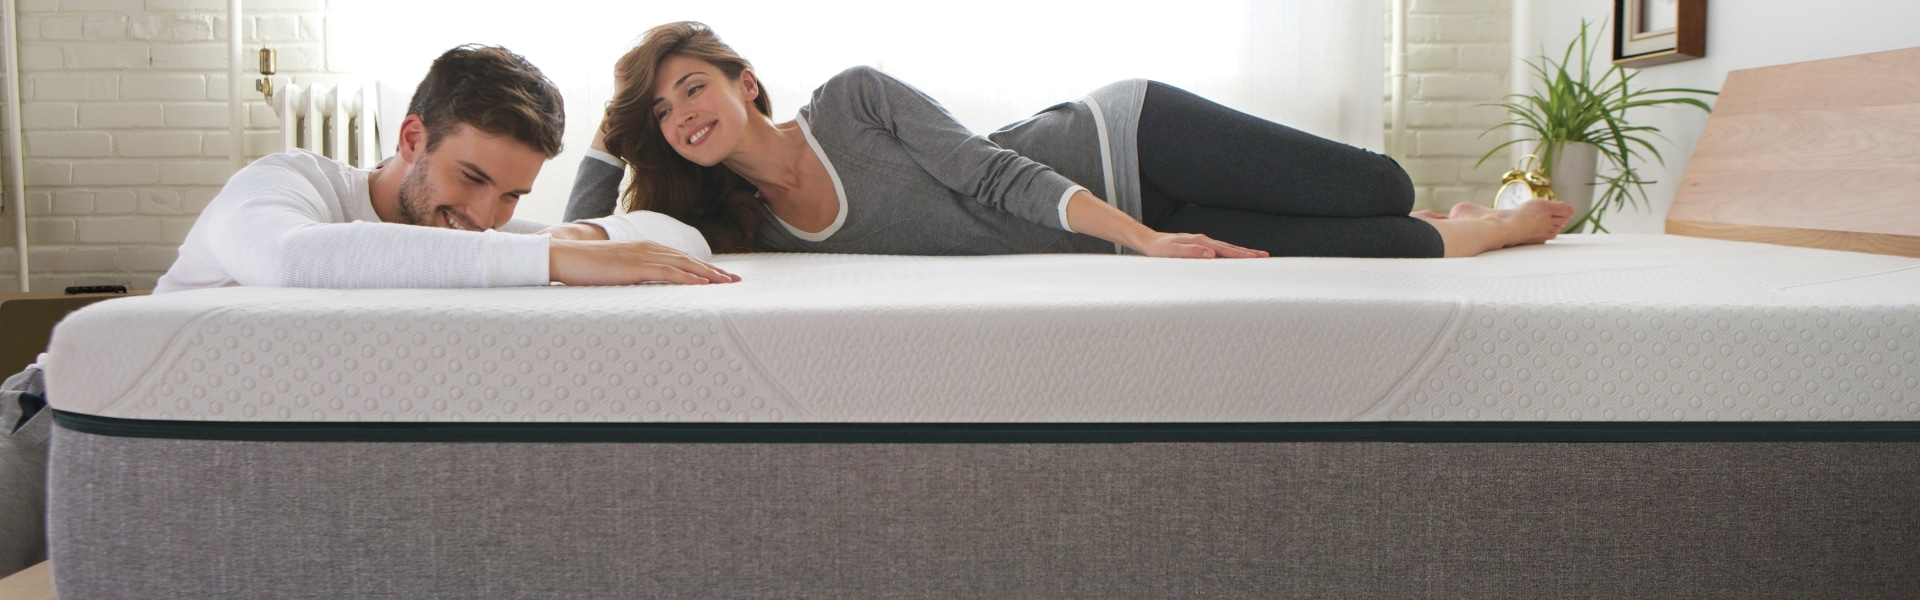 Best Mattresses for Couples Reviewed in Detail